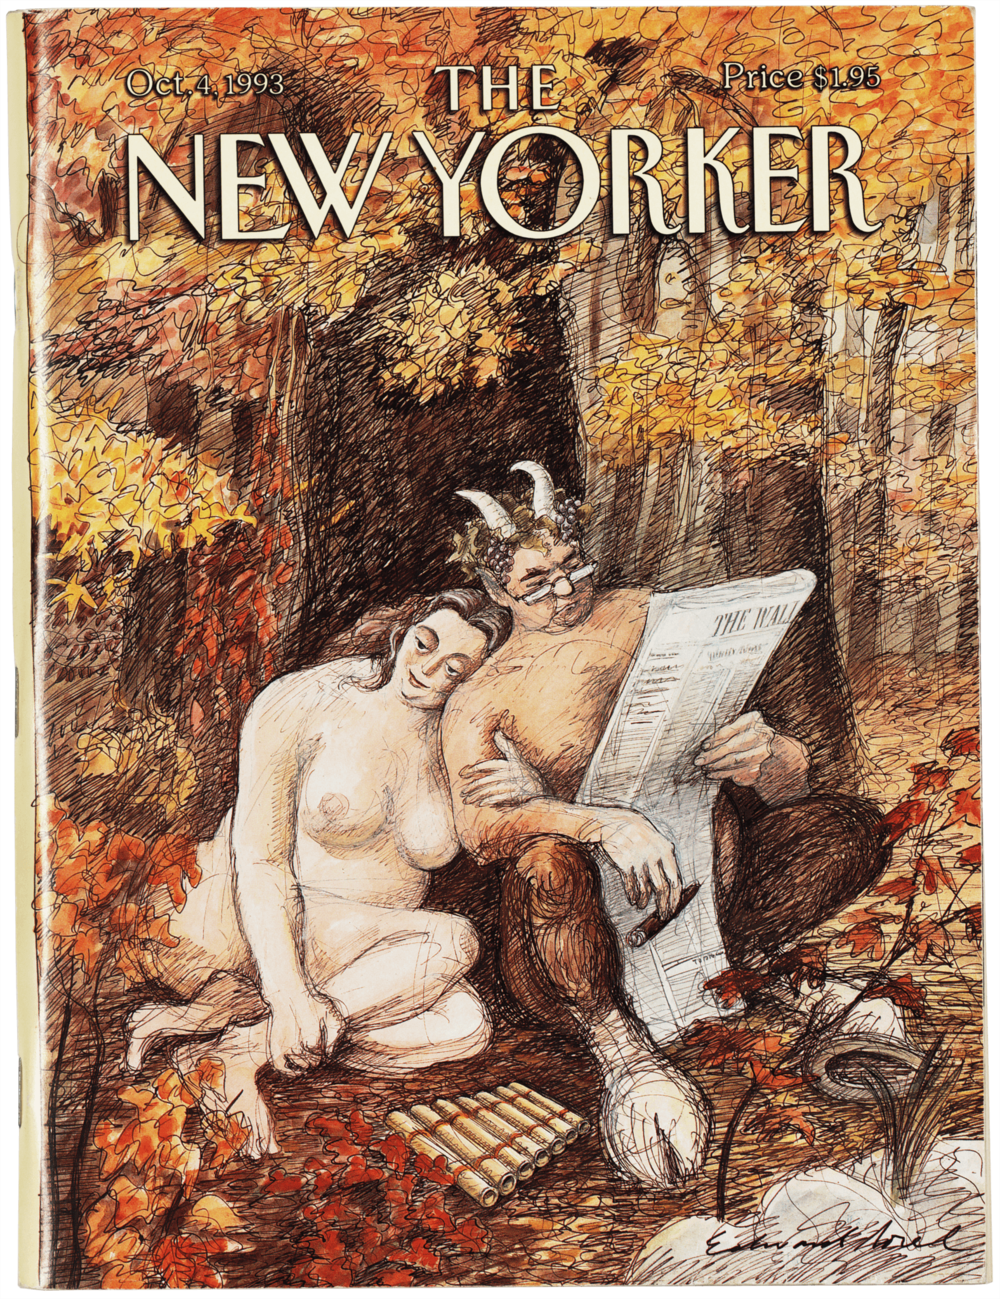 The New Yorker, October 4, 1993